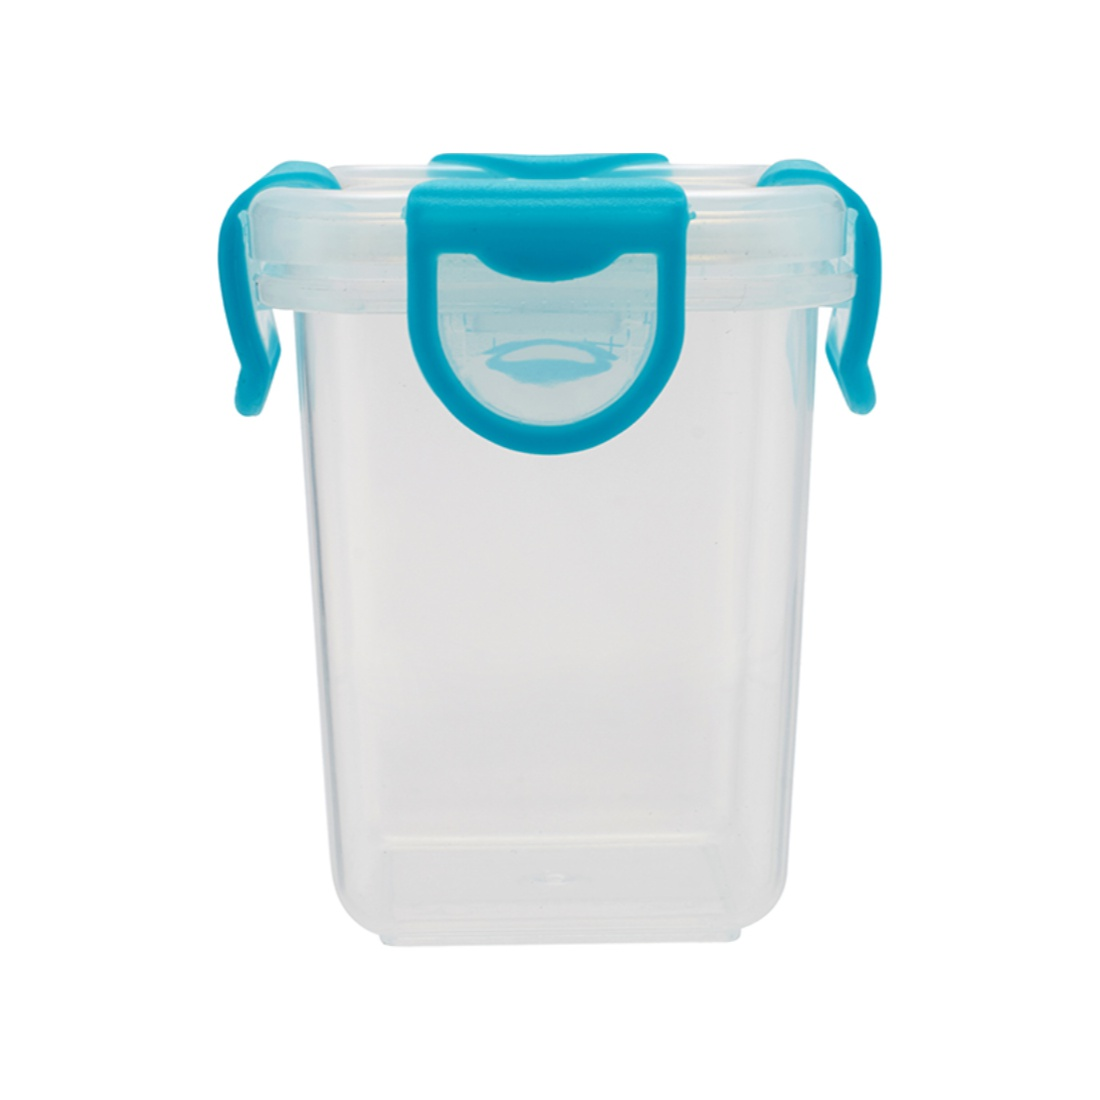 Clip Fresh 140 Ml Container Plastic Containers in Transparent And Blue Colour by Living Essence